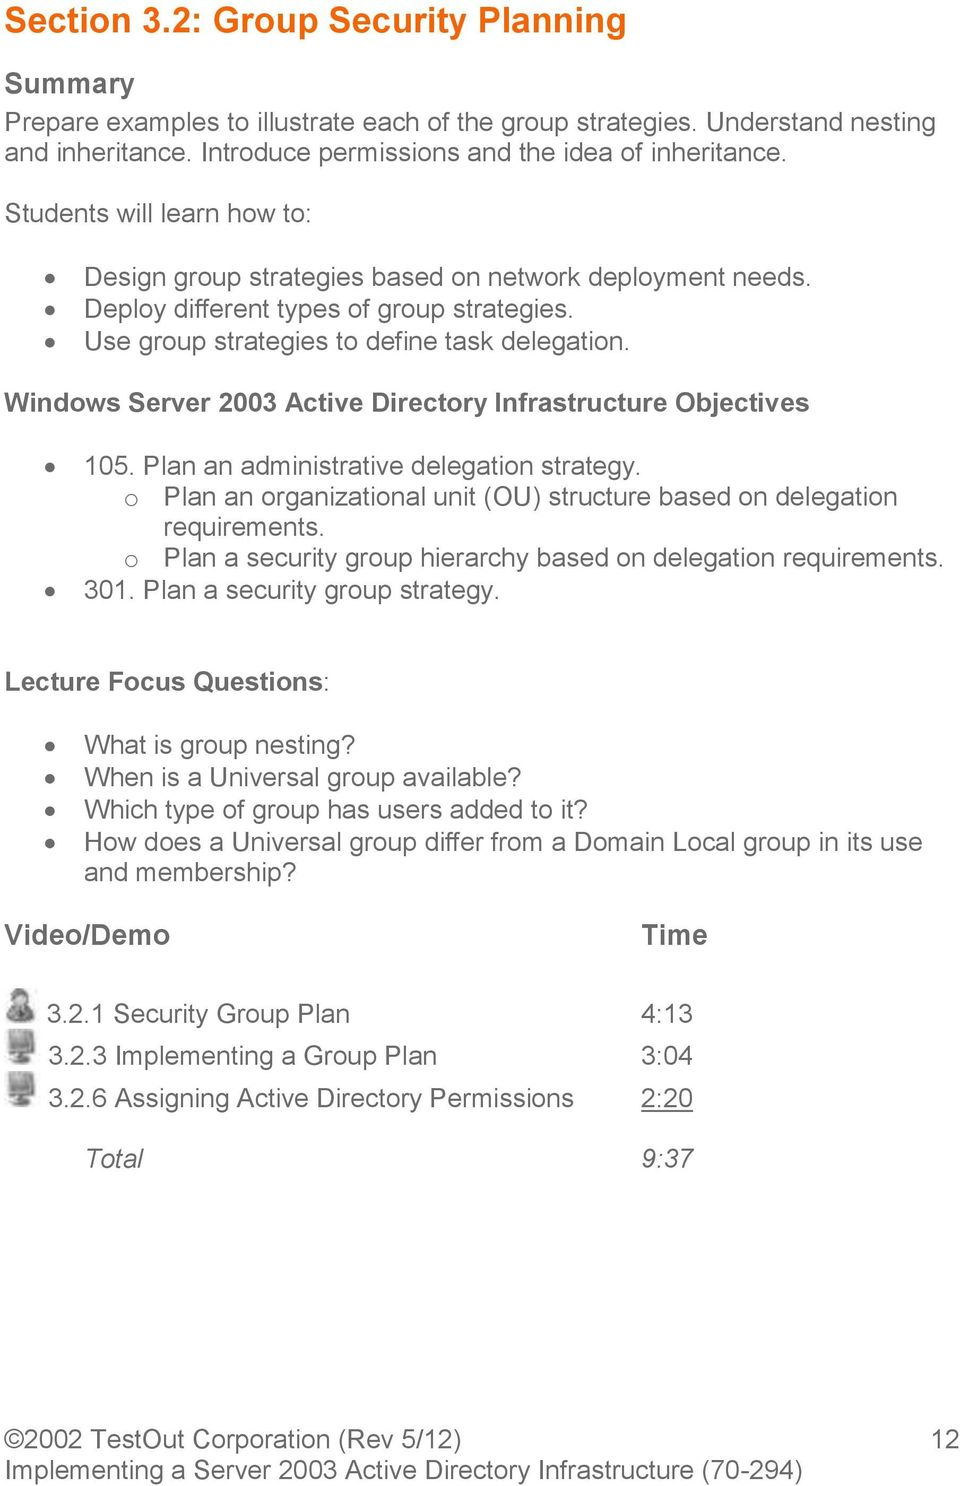 o Plan an organizational unit (OU) structure based on delegation requirements. o Plan a security group hierarchy based on delegation requirements. 301. Plan a security group strategy.